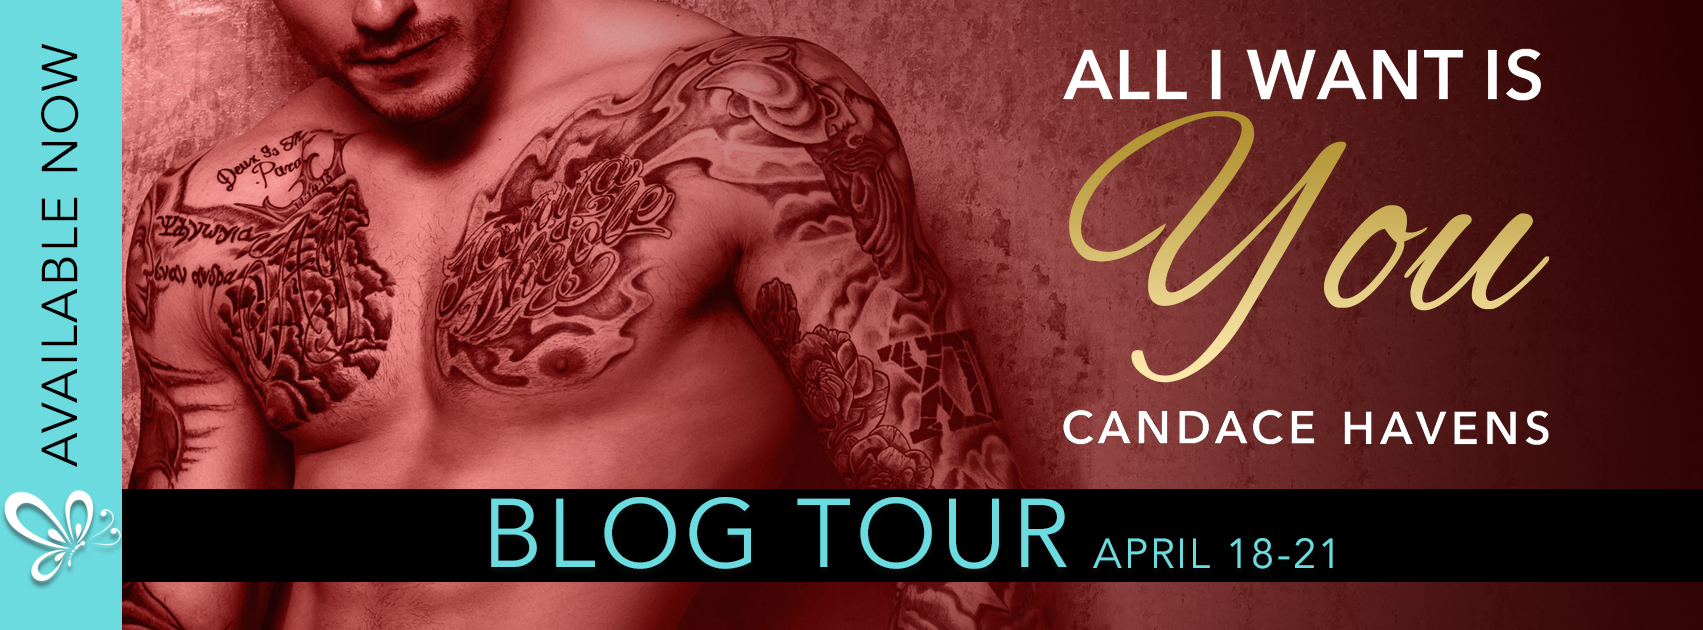 Blog Tour:  ALL I WANT IS YOU by Candace Havens